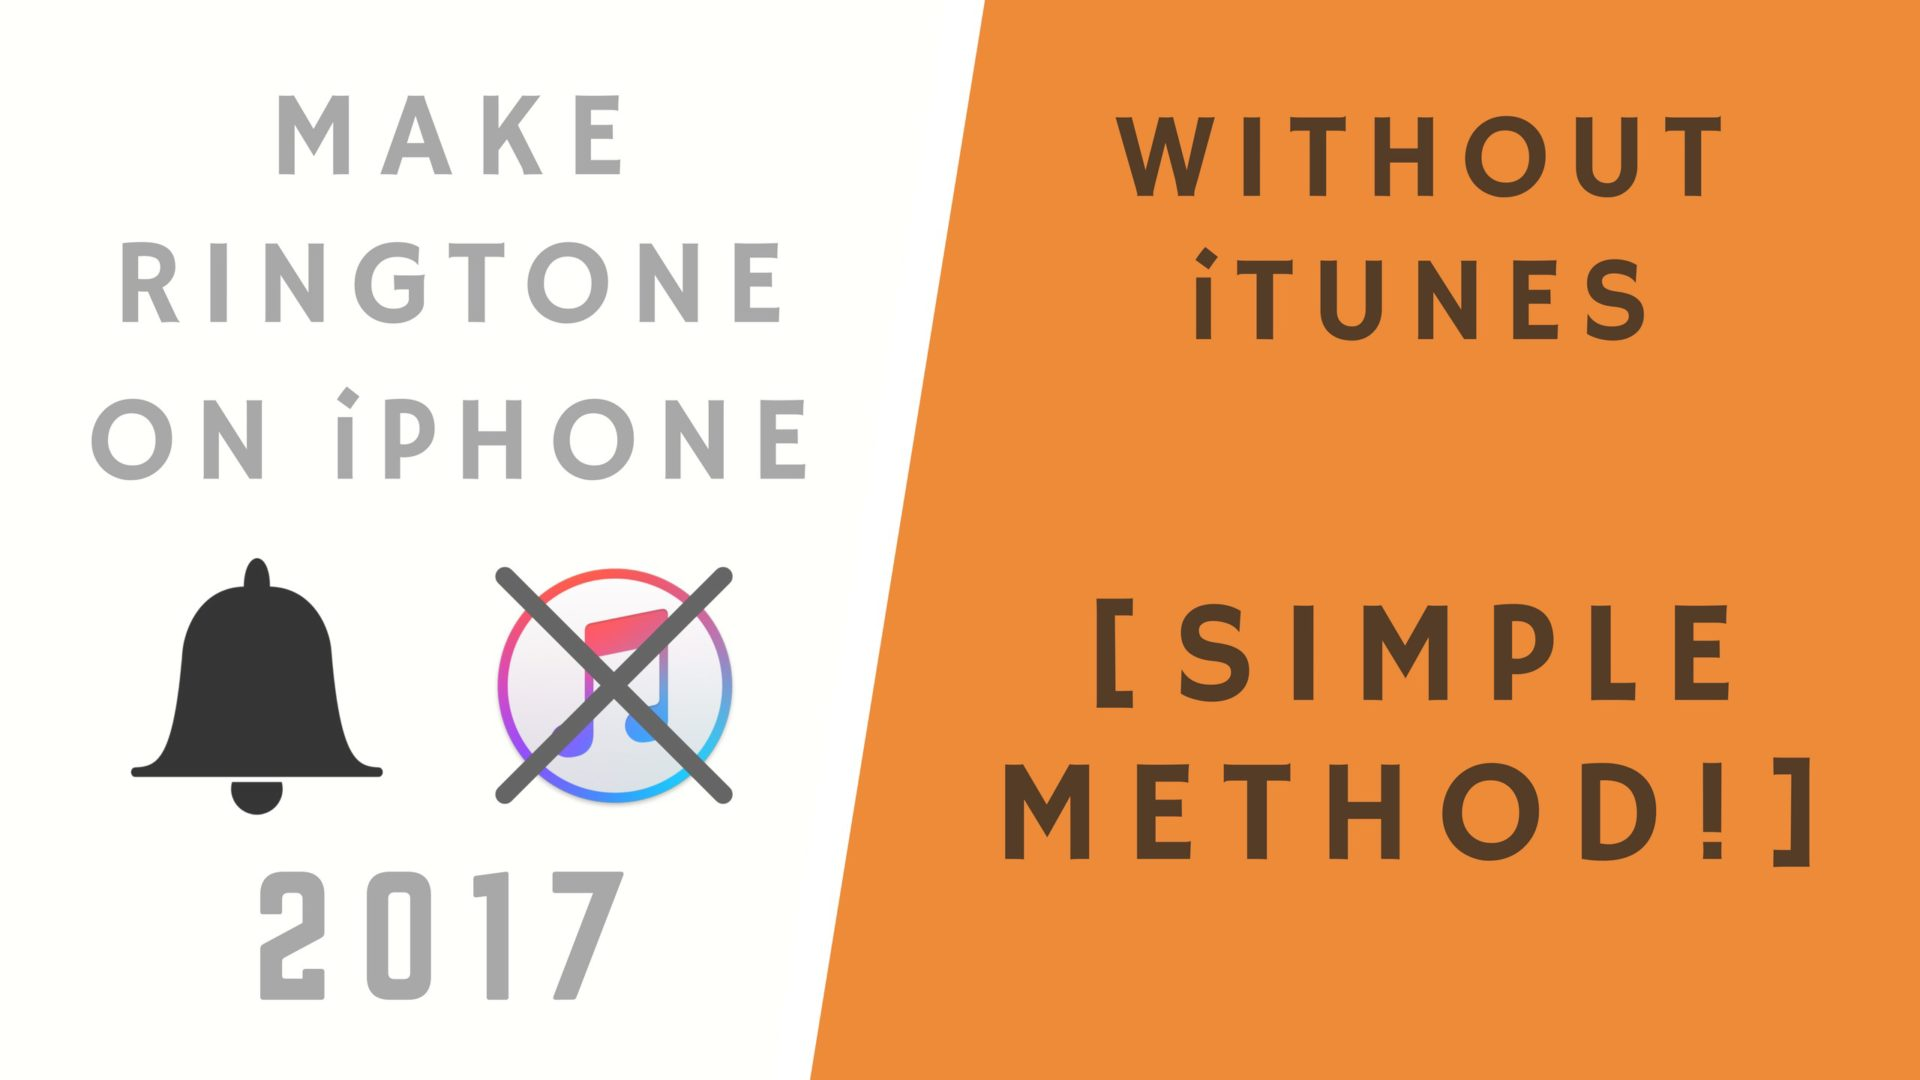 Make Ringtone Without ITunes (easy Method!)